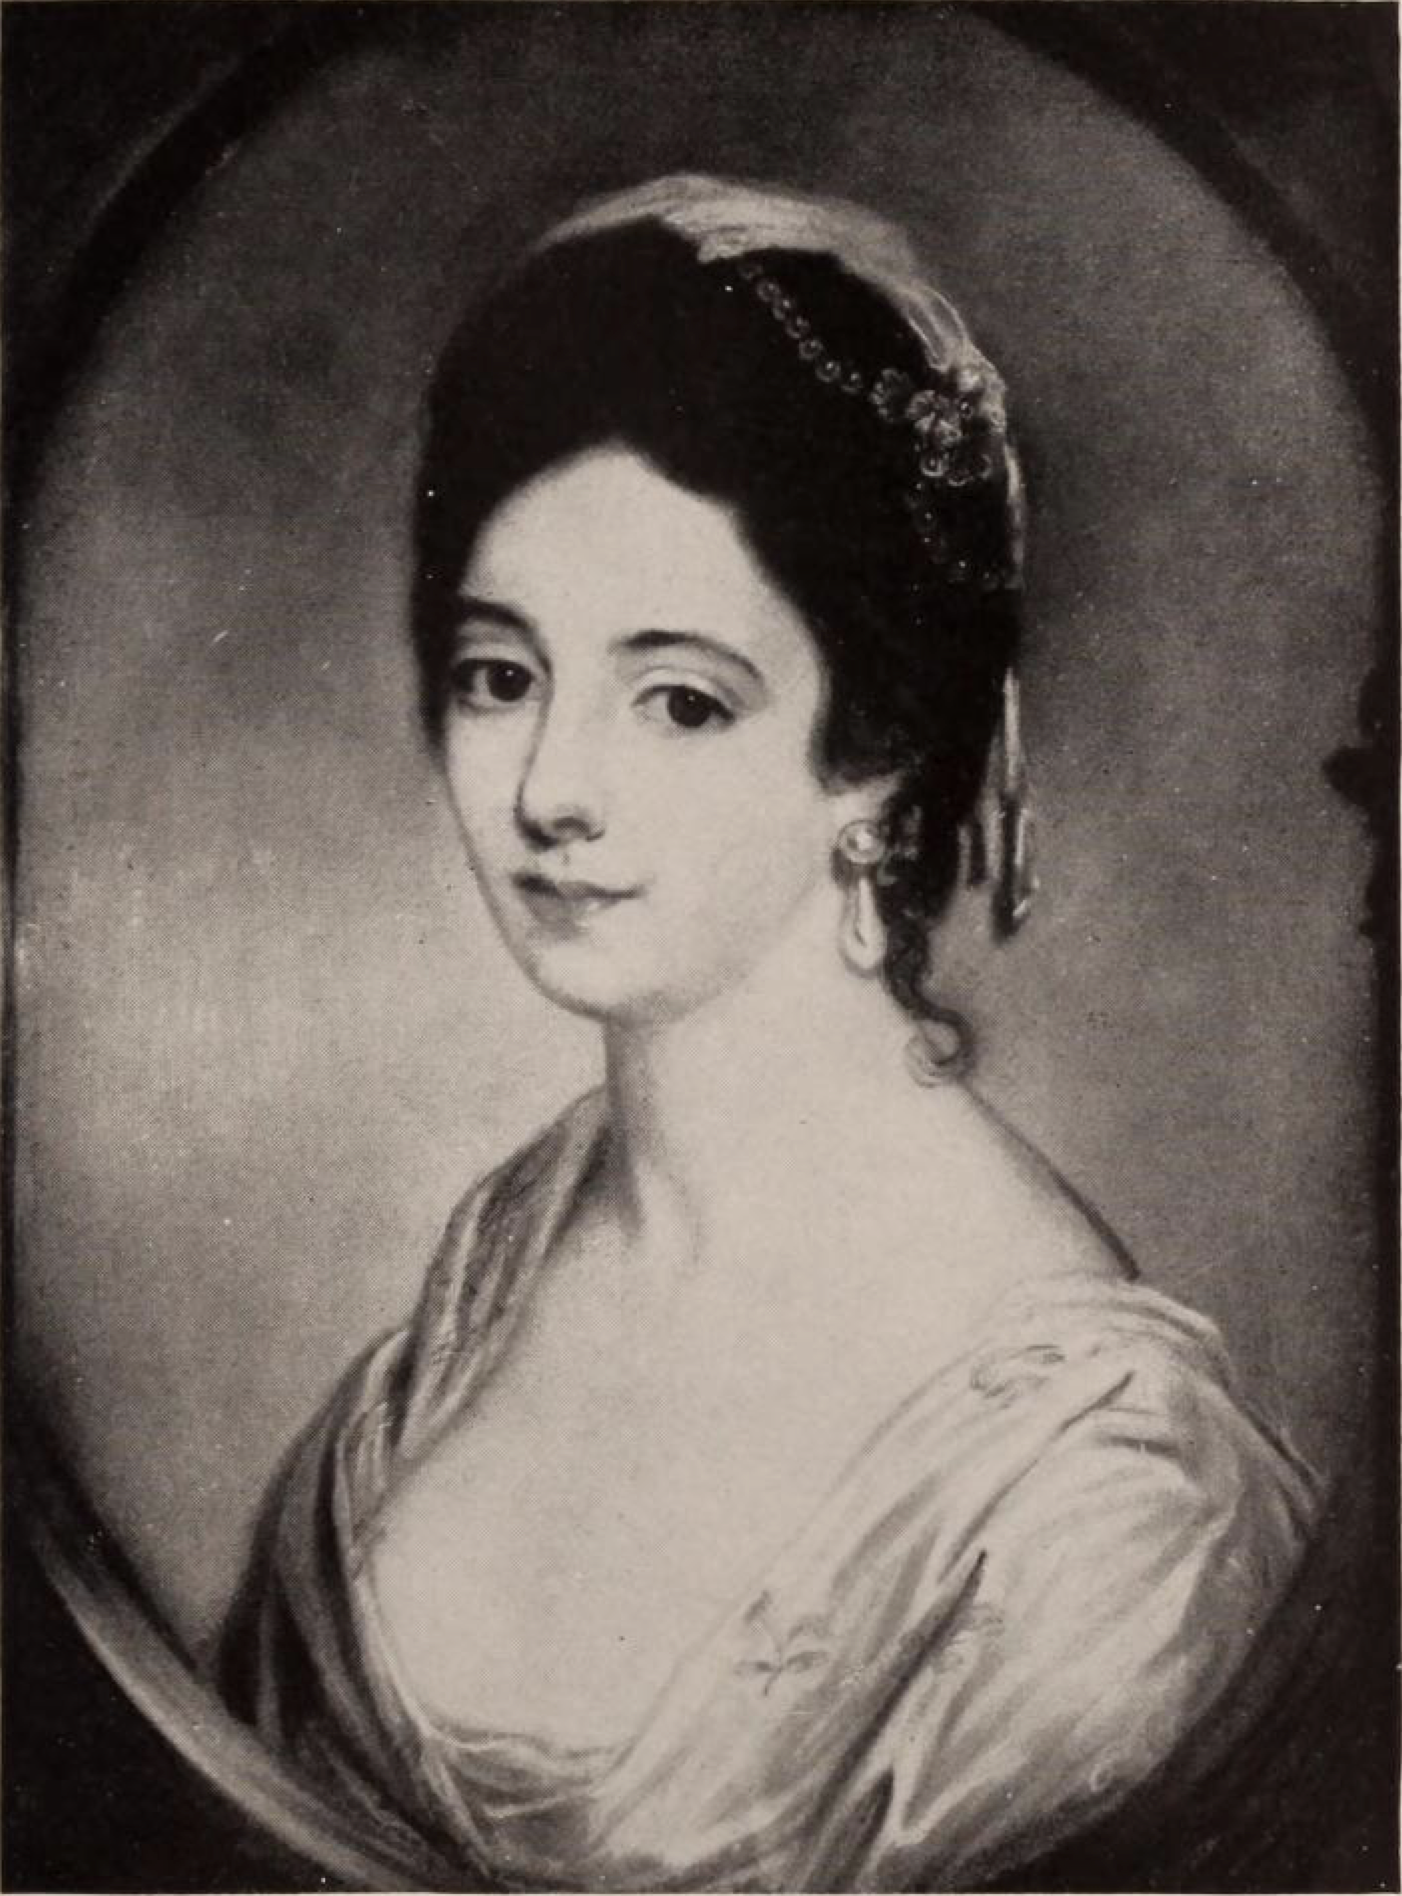 Lady Ann de Crespigny, portrait by Katherine Read